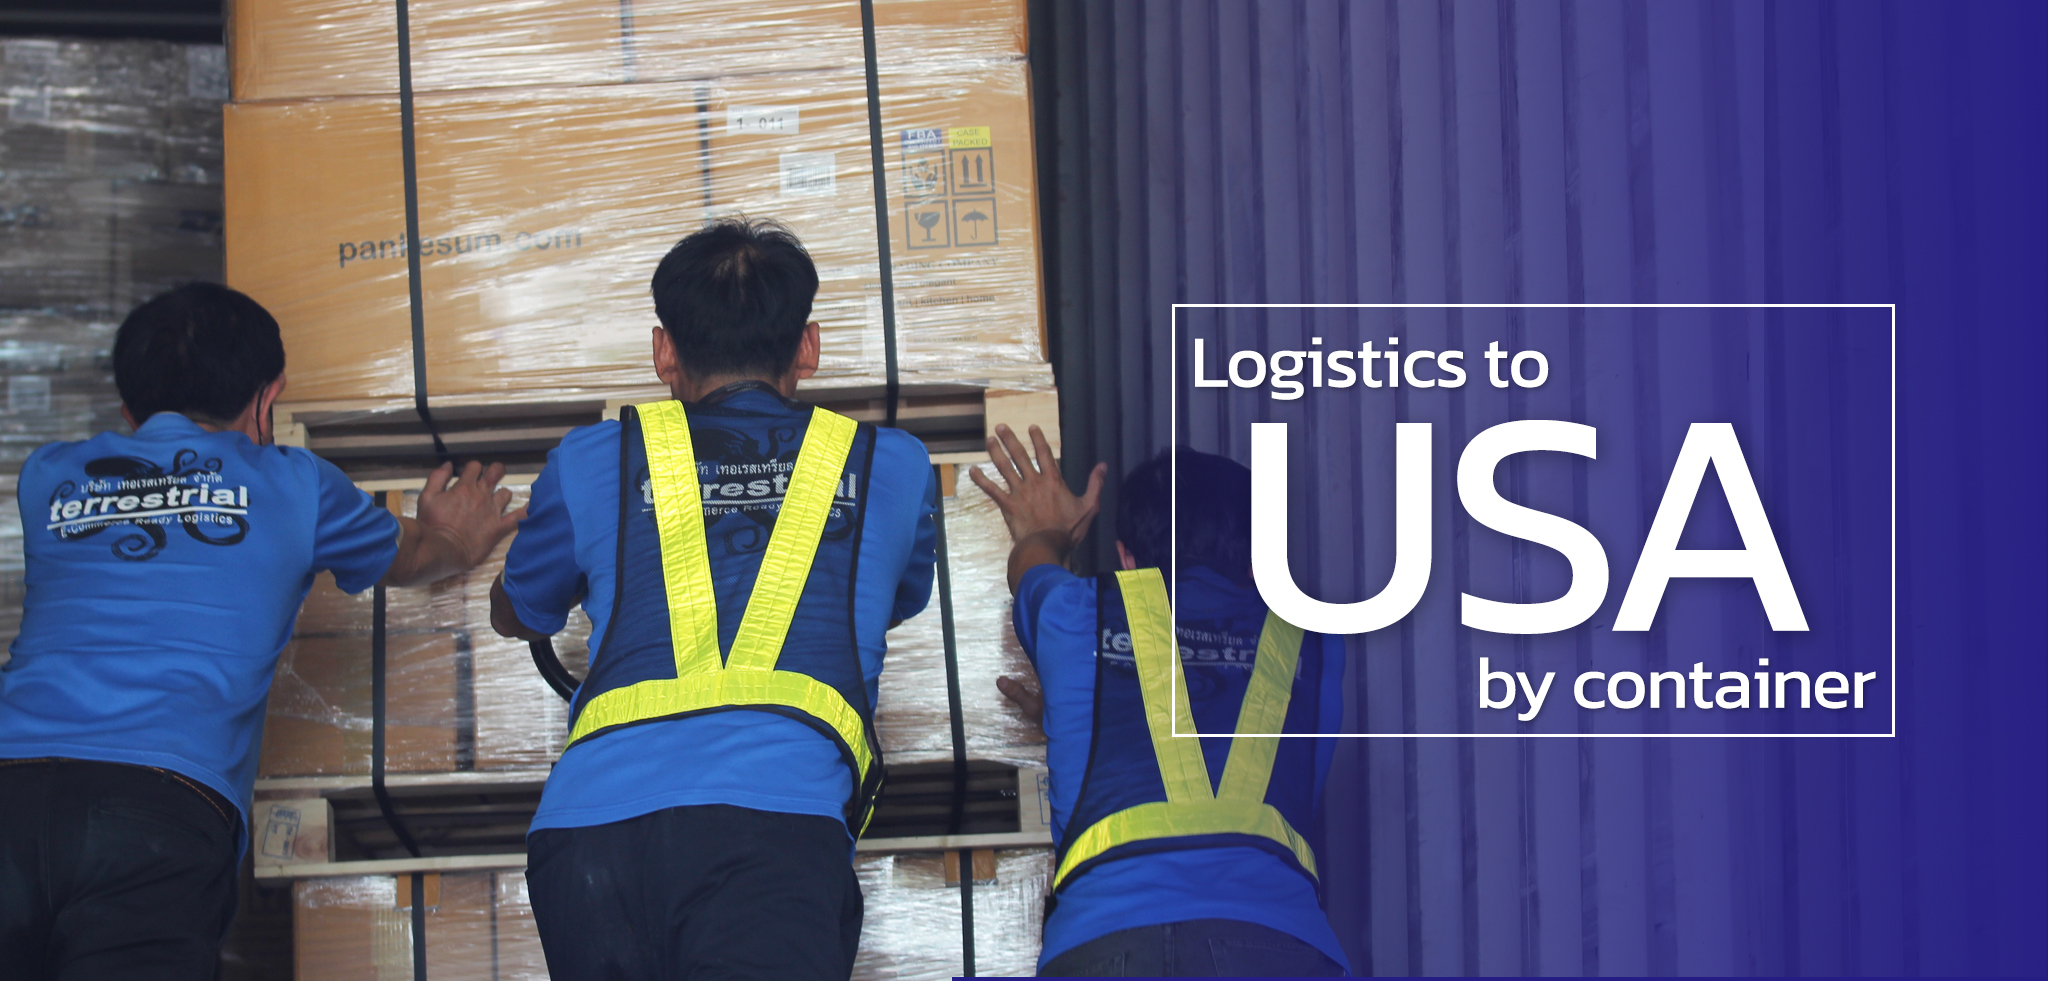 logistics to usa by container